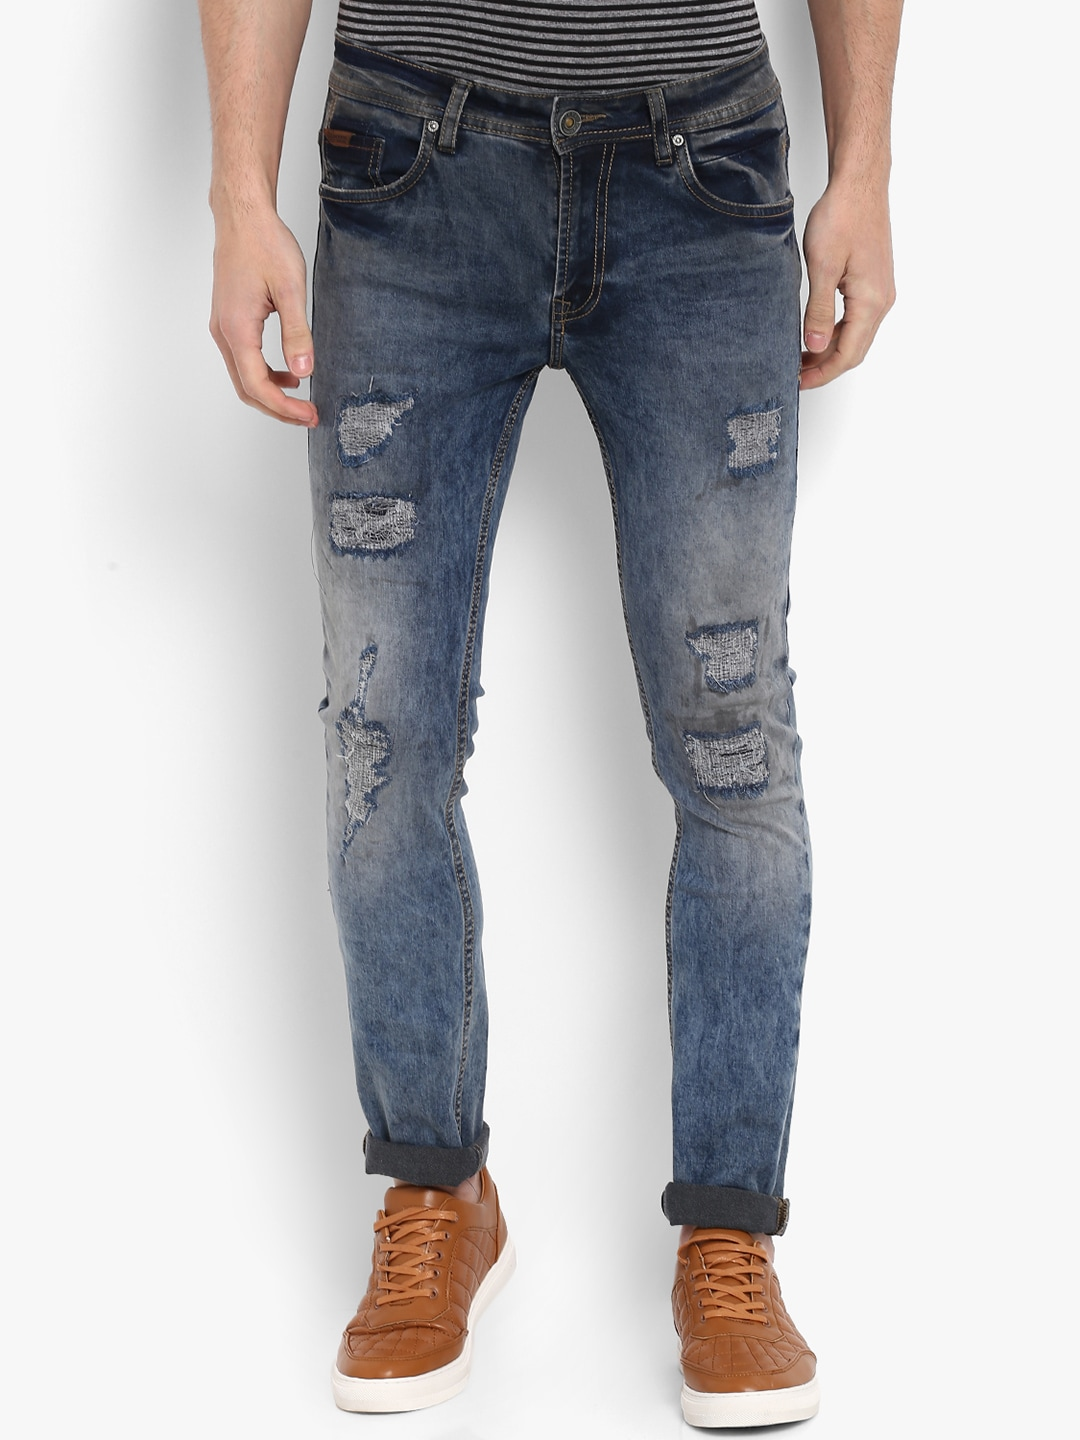 fe710dbd876 Mufti Jeans - Buy Mufti Jeans Online in India